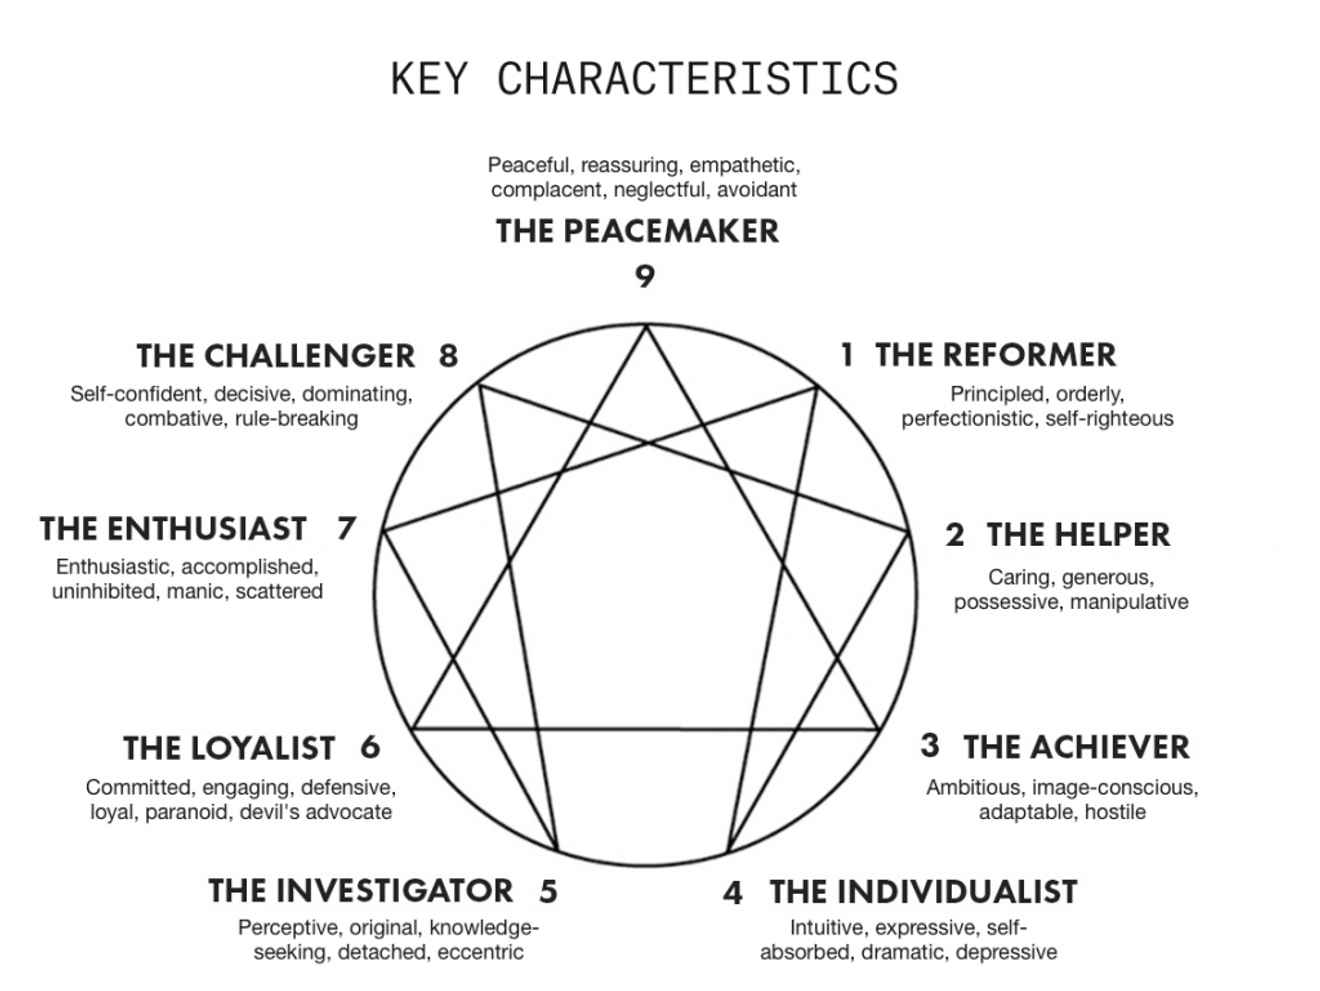 Key characteristics of the nine Enneagram types